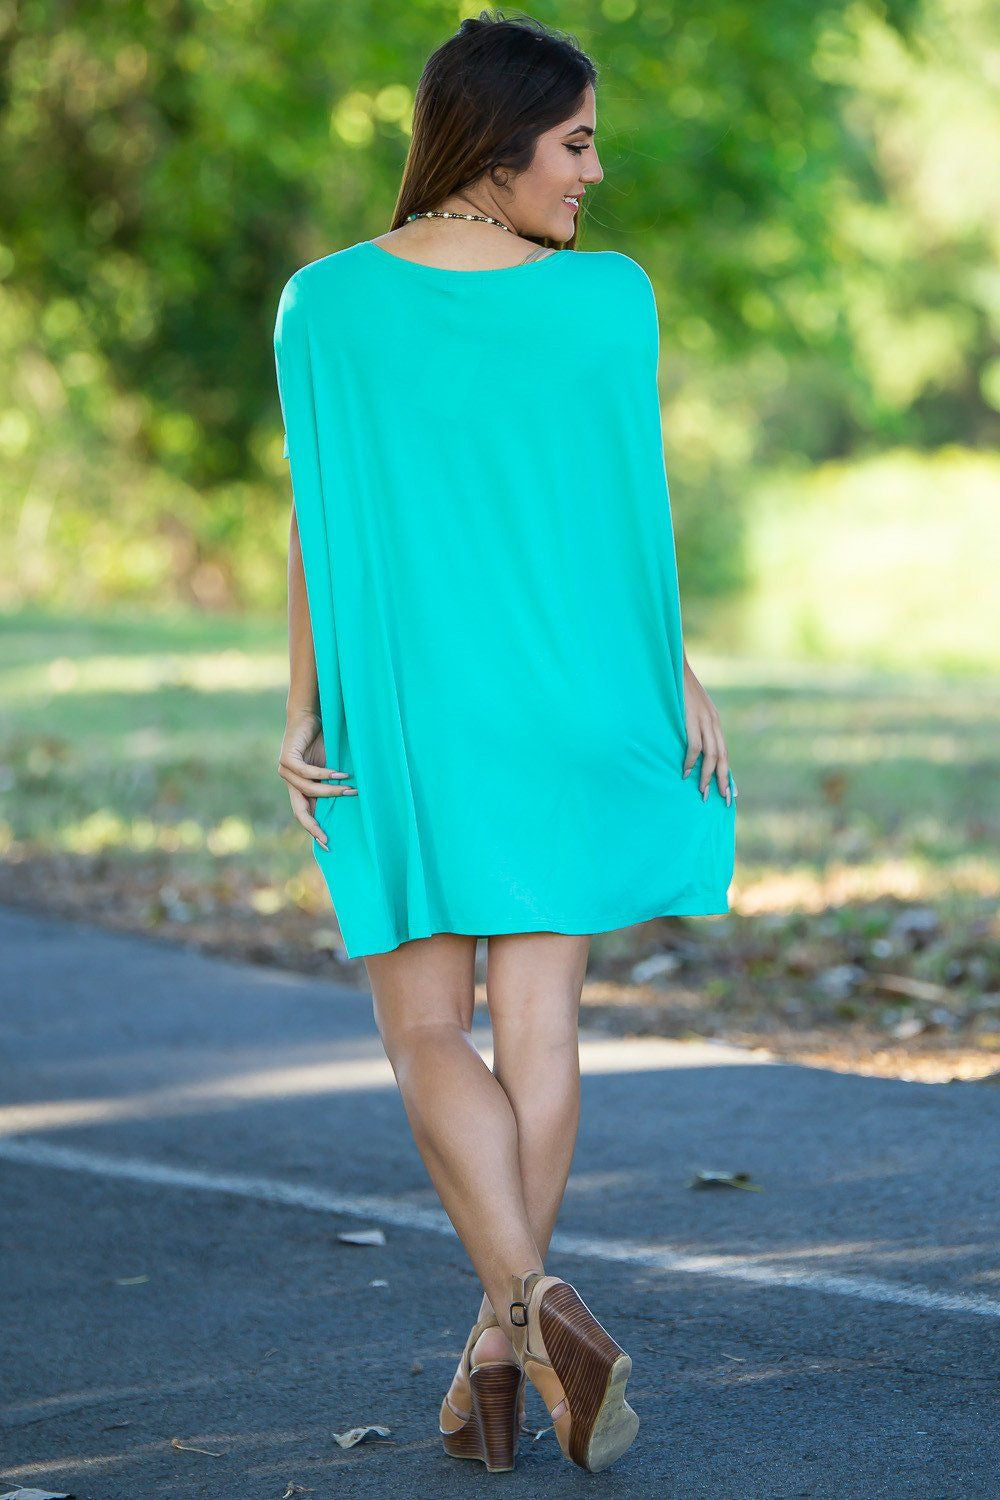 Short Sleeve Piko Tunic - Light Green - Piko Clothing - 2